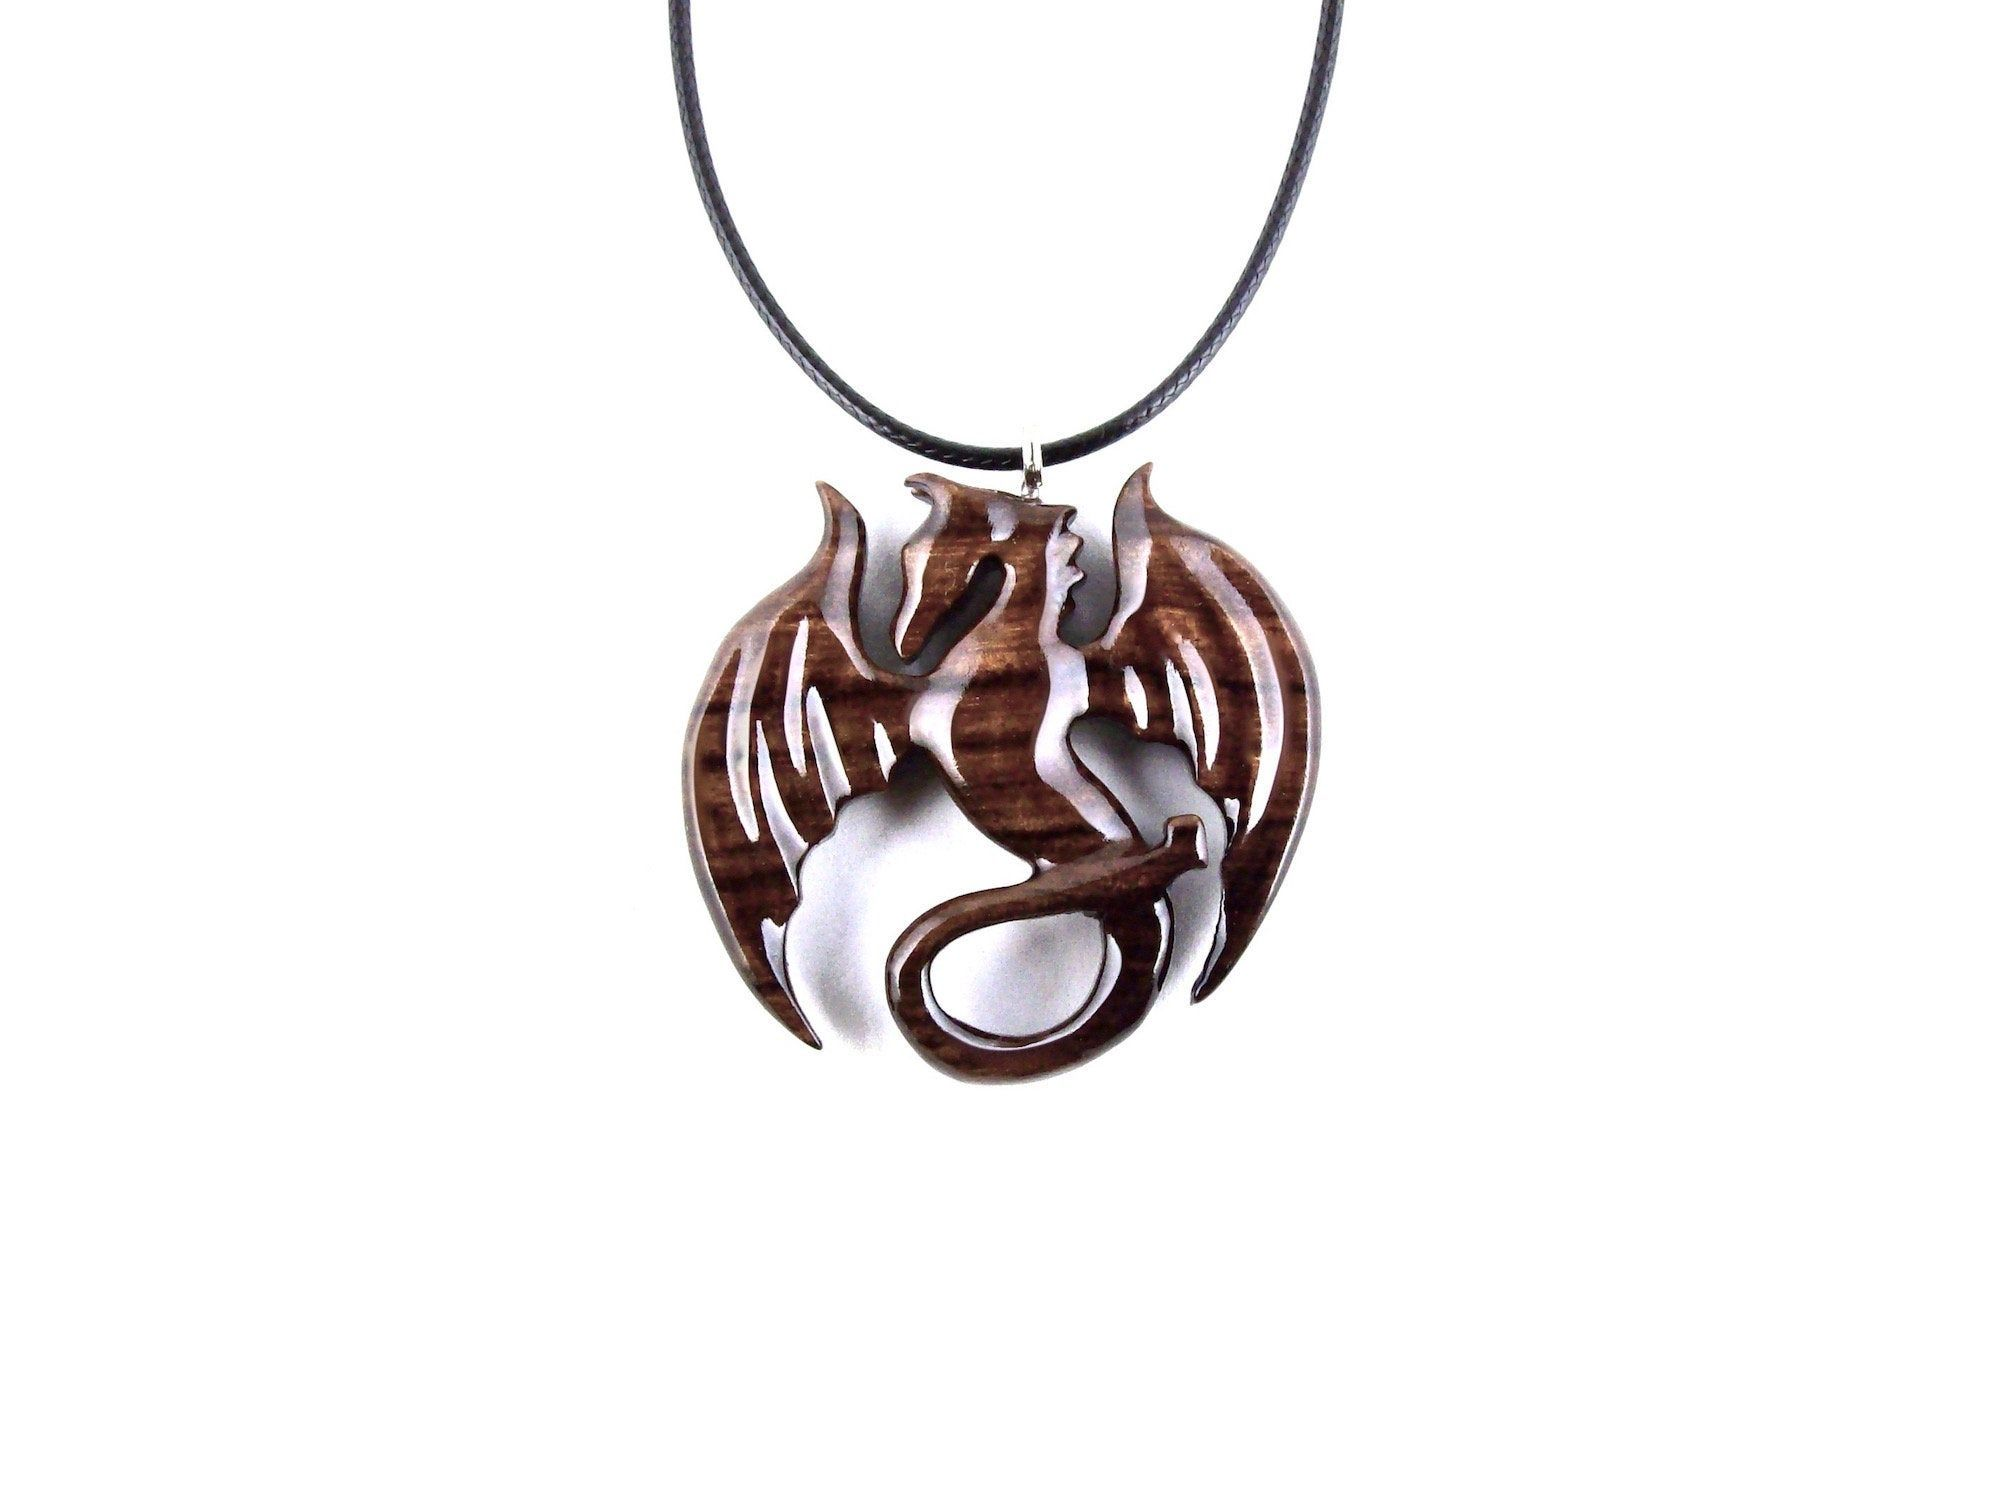 Fantasy Jewelry Wood Dragon Jewelry Gift for Her Him Carved Wooden Dragon Pendant Dragon Necklace for Men or Women